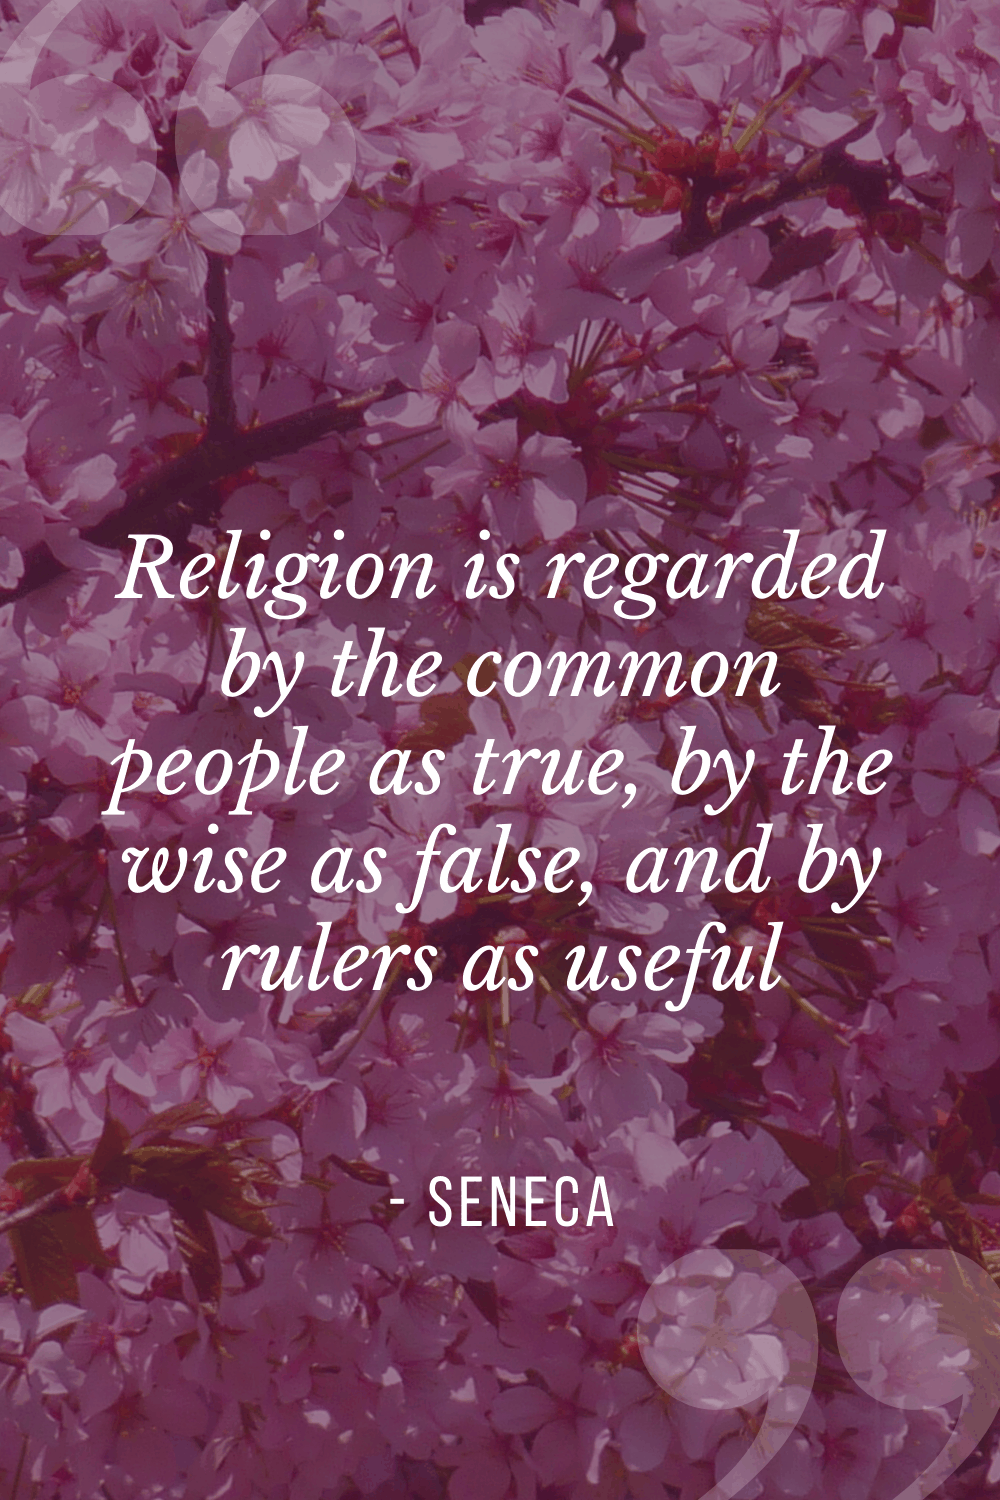 """Religion is regarded by the common people as true, by the wise as false, and by rulers as useful"", Lucius Annaeus Seneca"